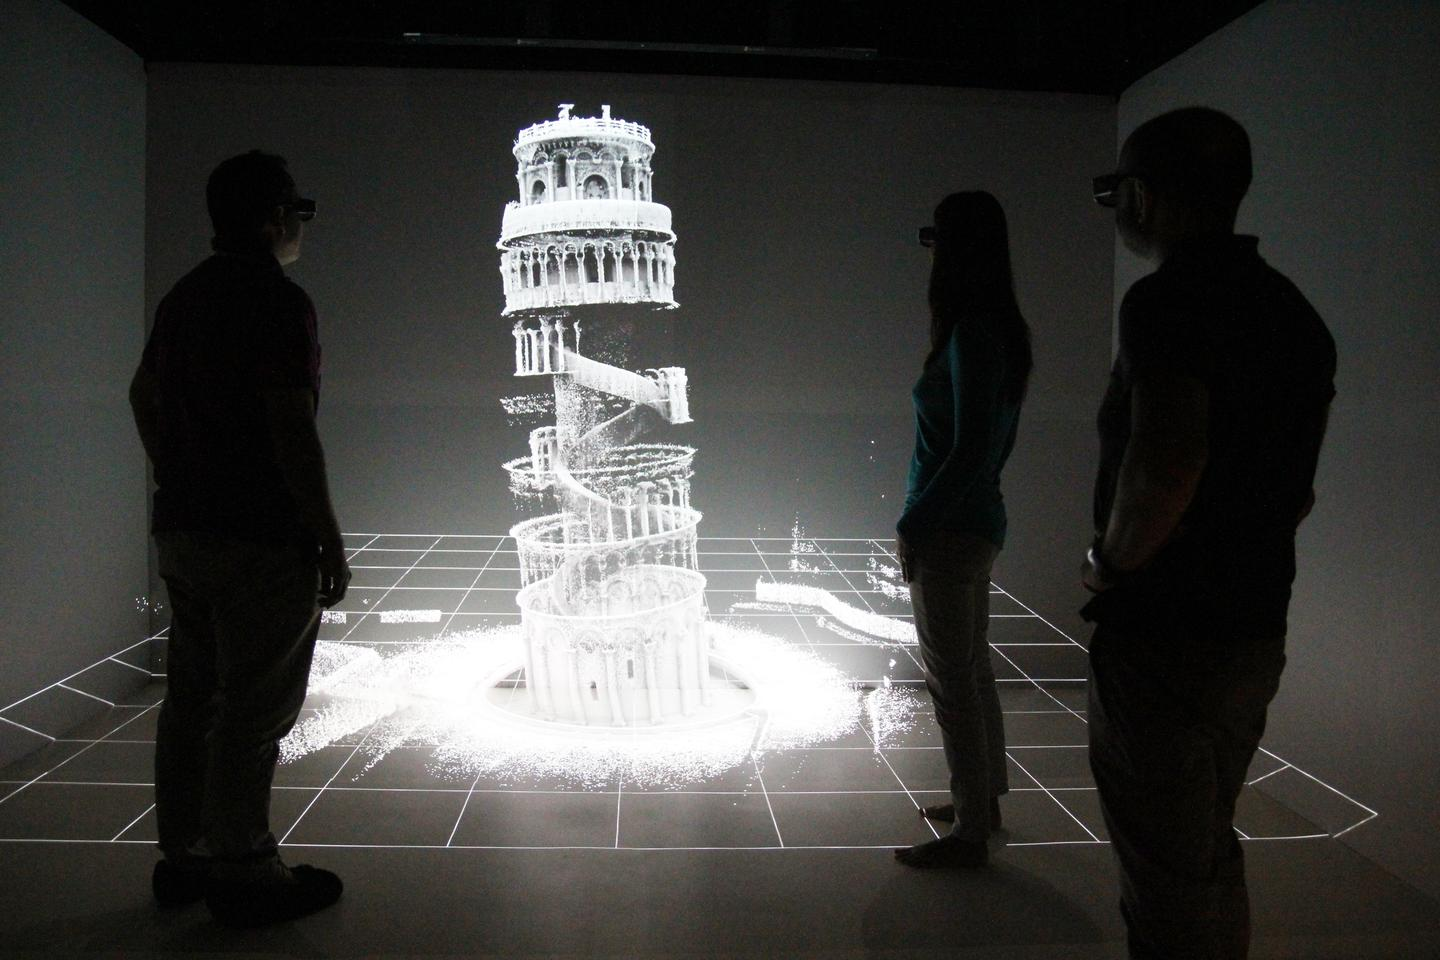 The CSIRO's scan of the Leaning Tower of Pisa was completed in under 20 minutes